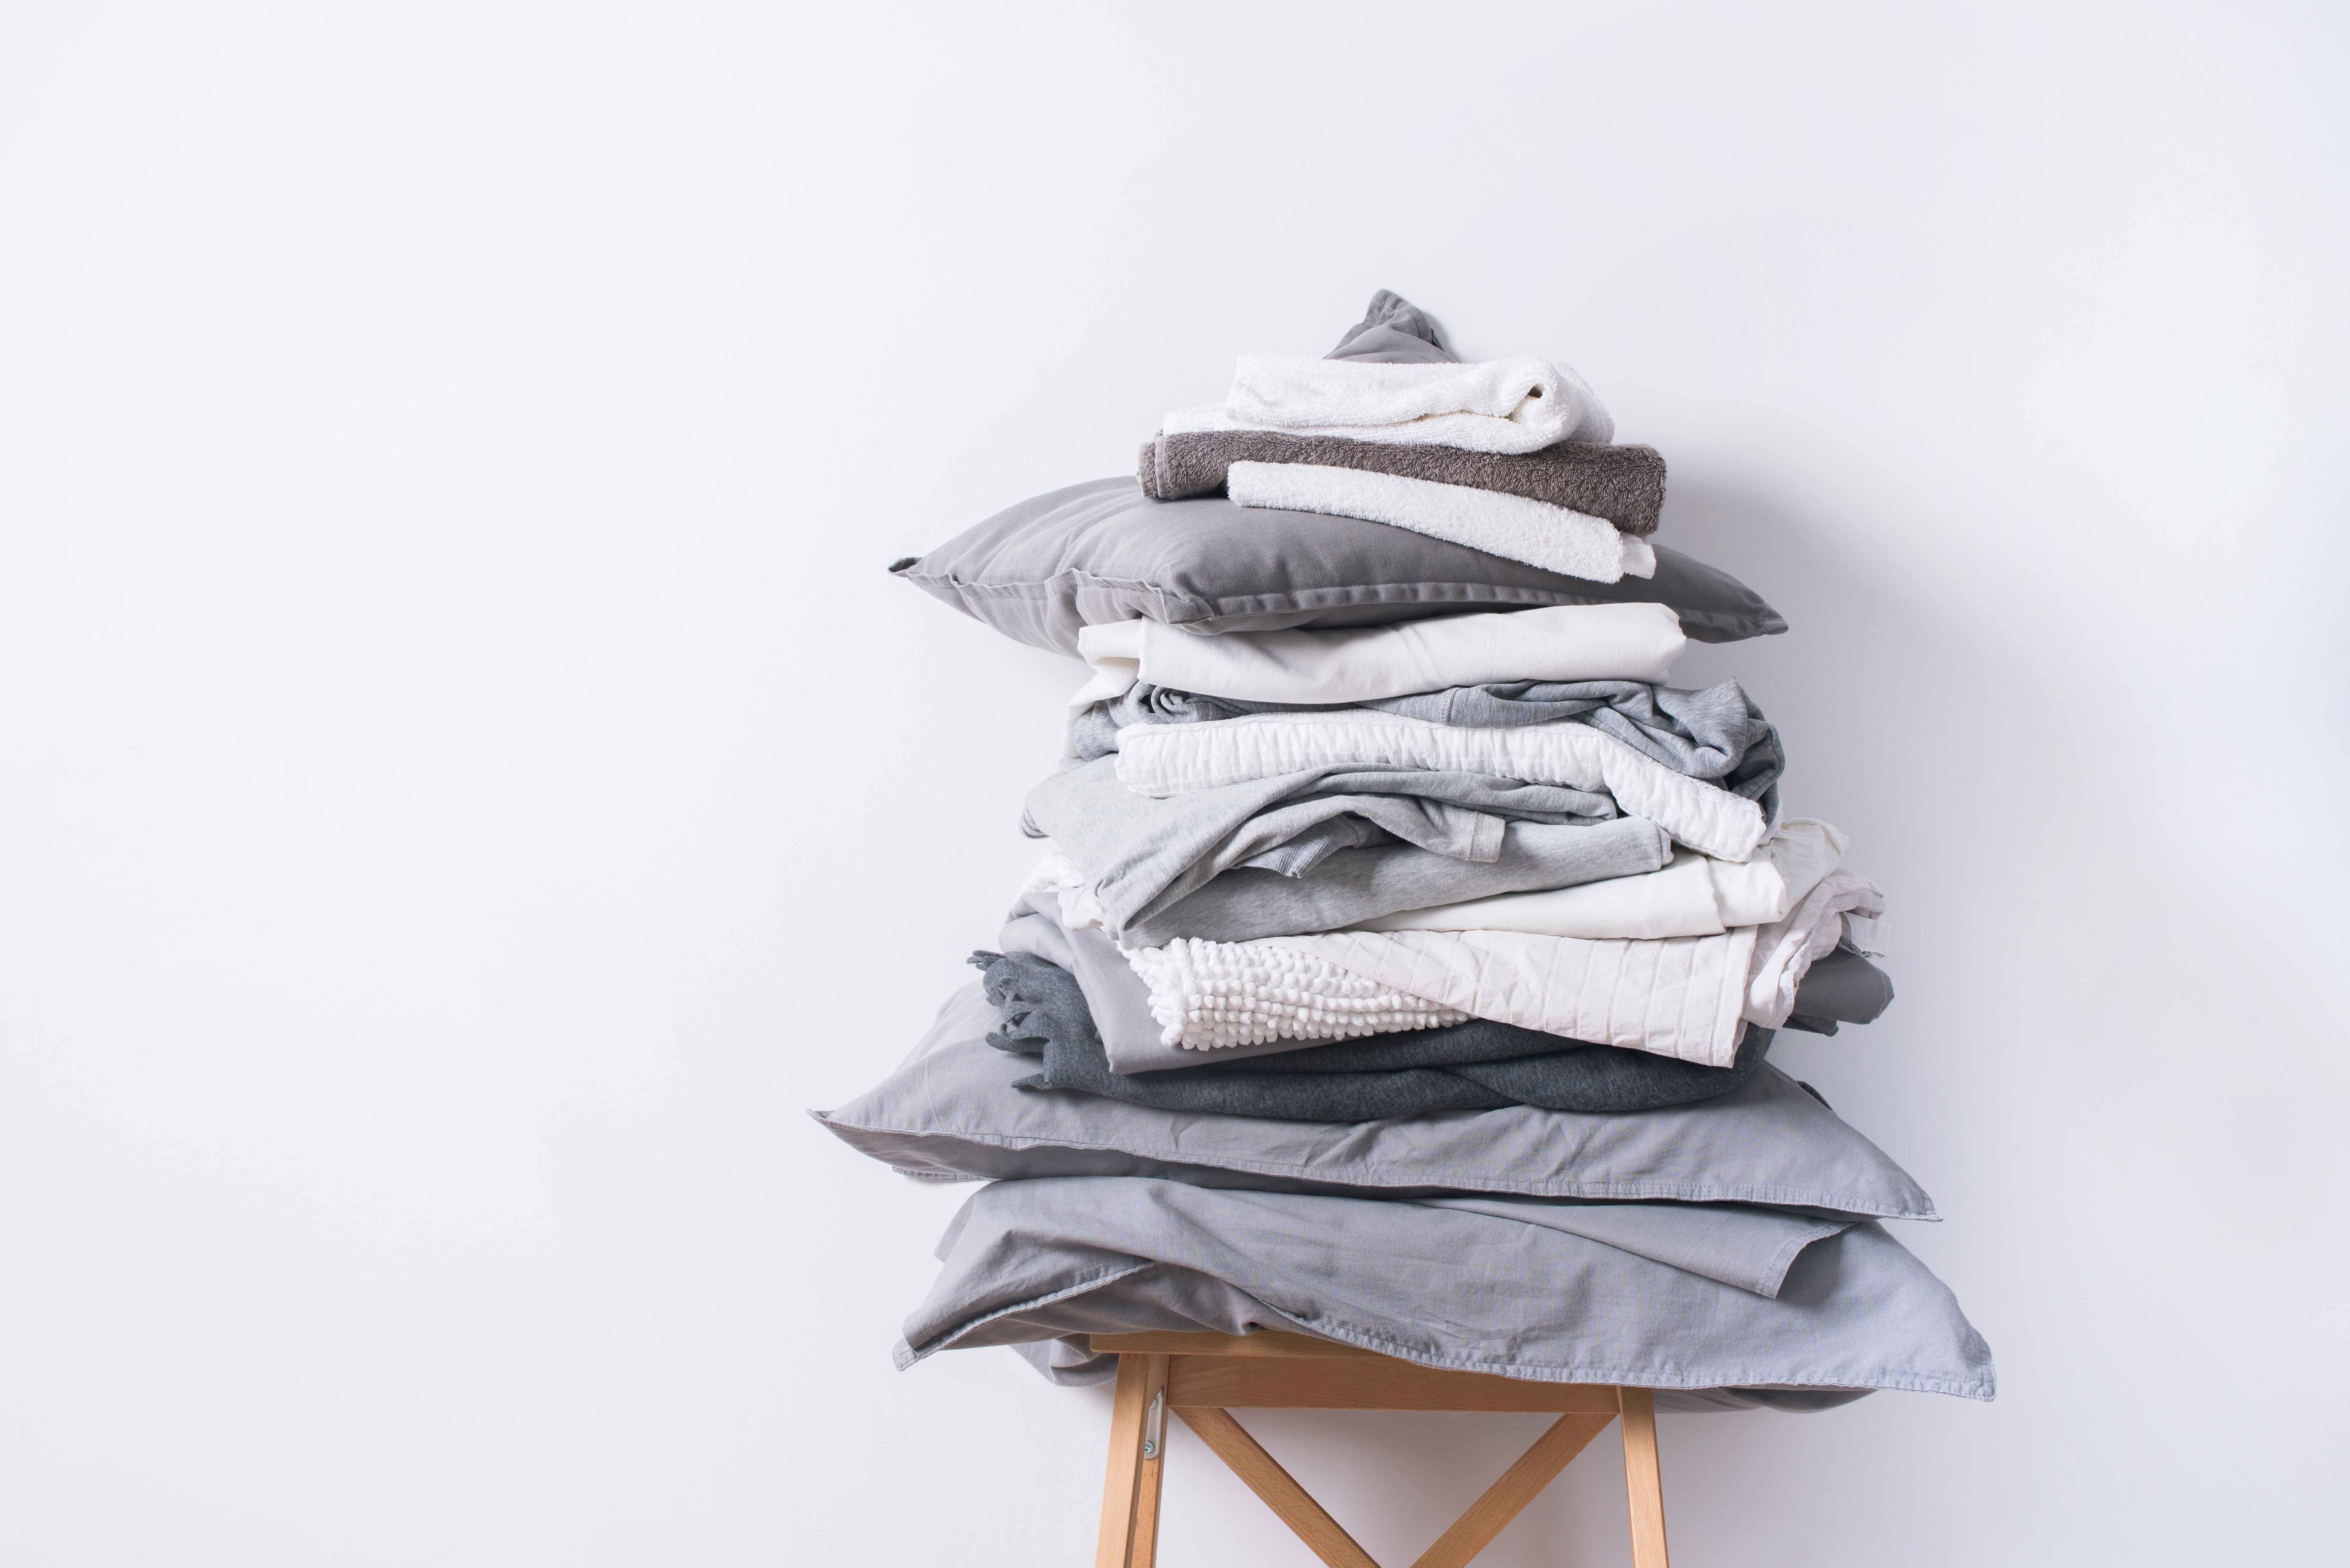 Commercial Laundry Business - Highly profitable - Assets included